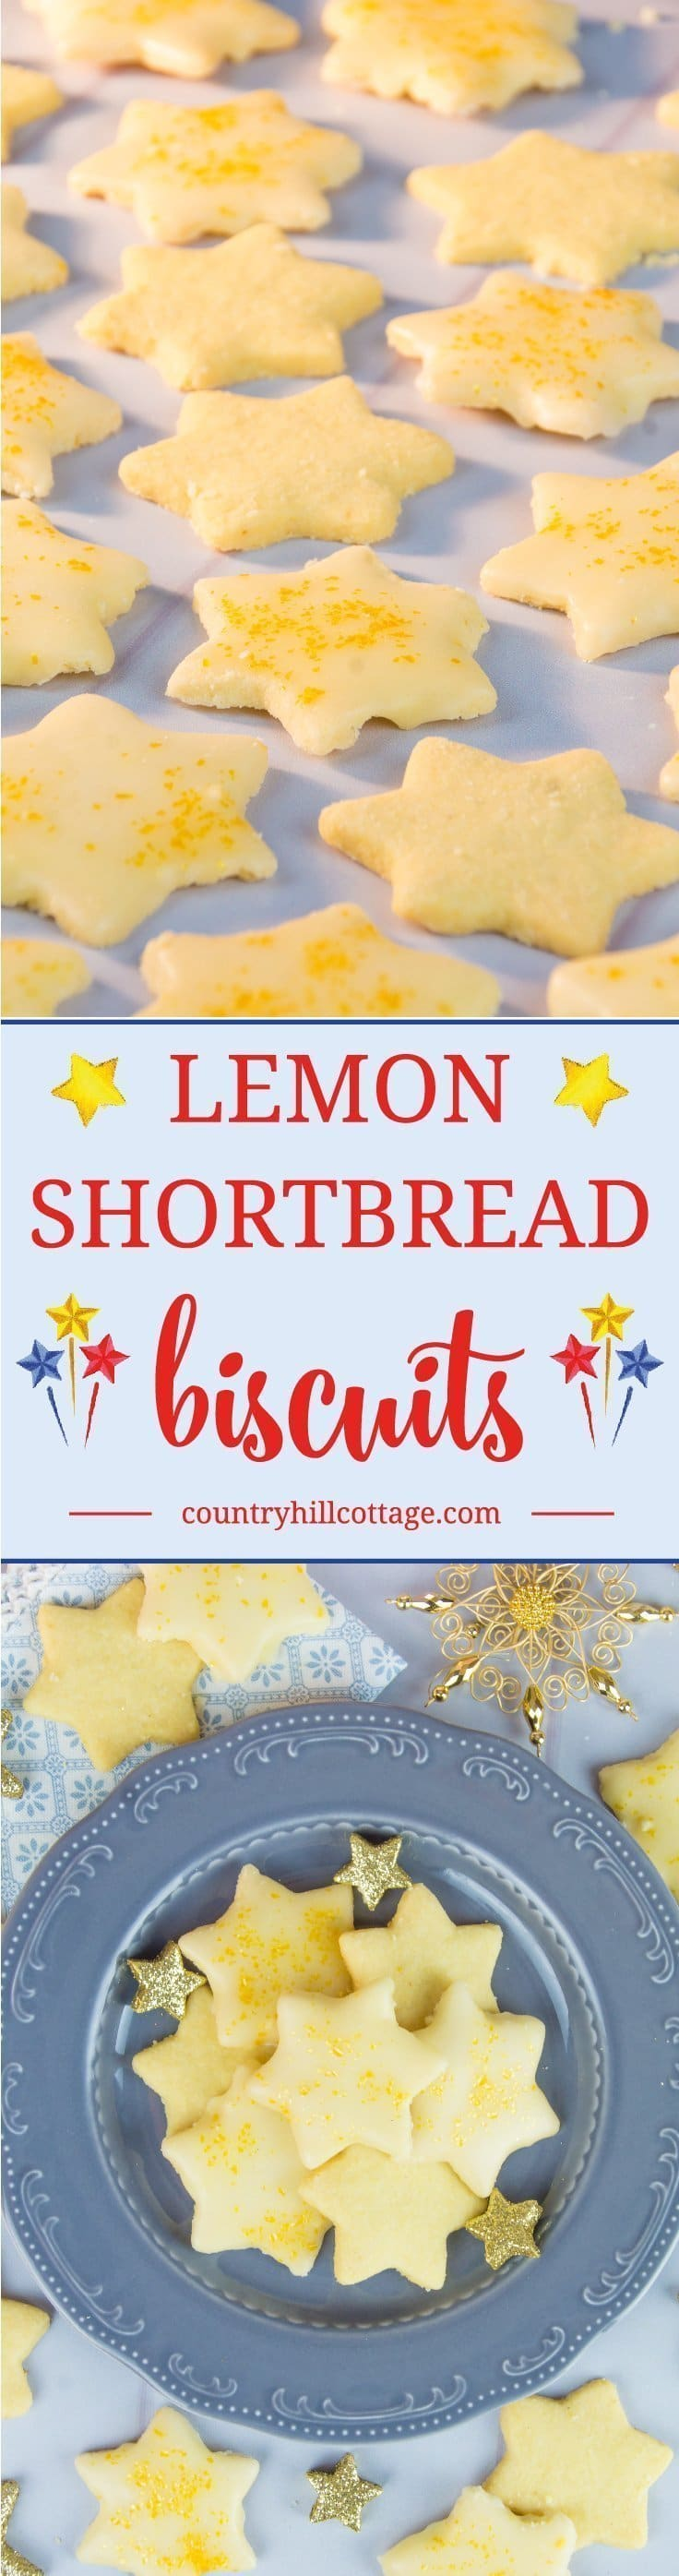 Lemon shortbread stars cookie recipe #cookies #biscuits | countryhillcottage.com